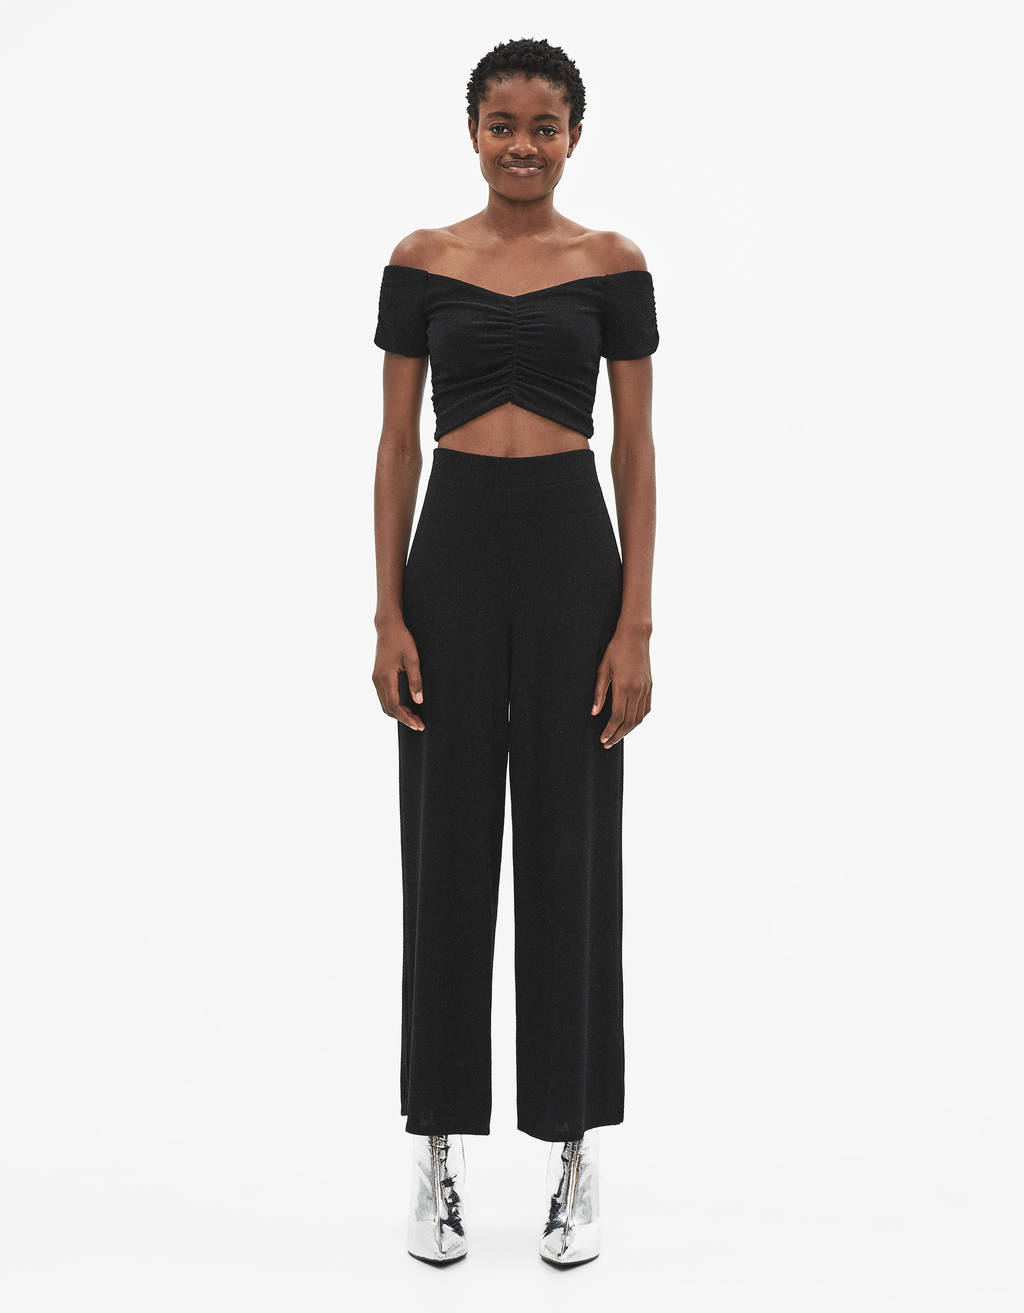 Shimmery culottes